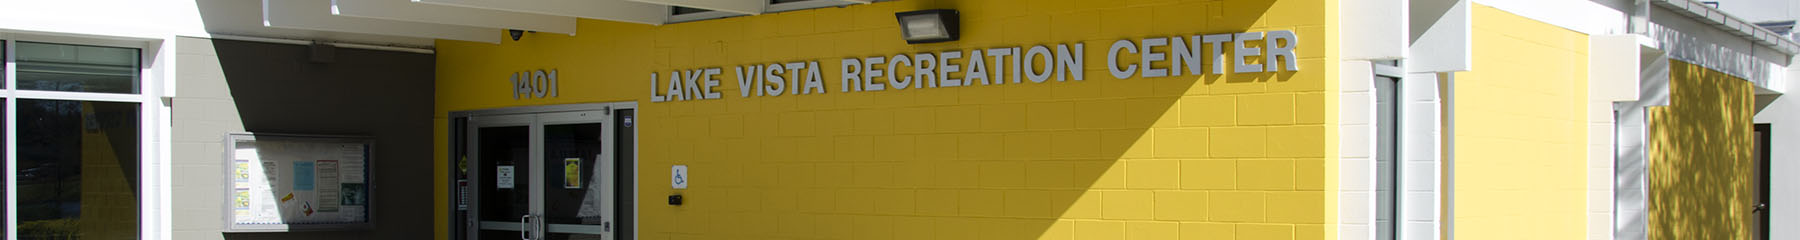 Rent Lake Vista Recreation Center